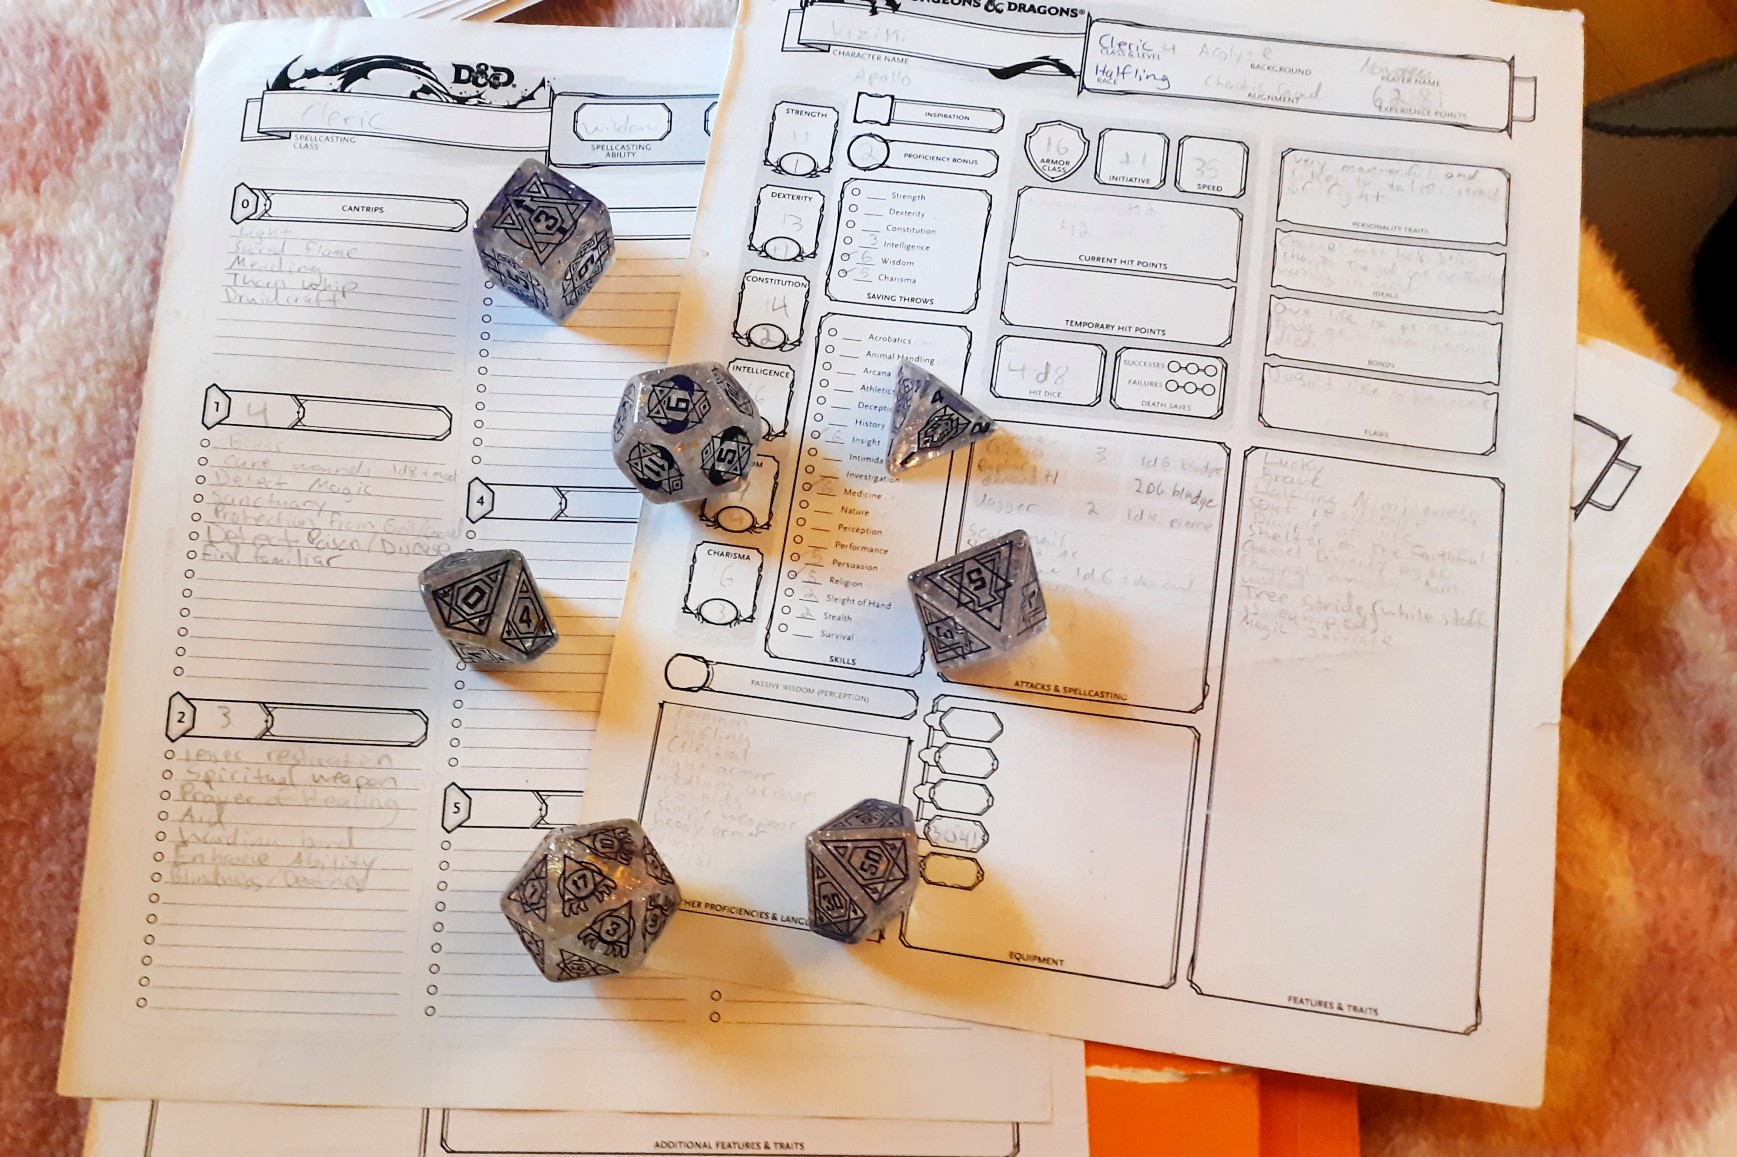 How Dungeons and Dragons Brought Friends Together During COVID-19